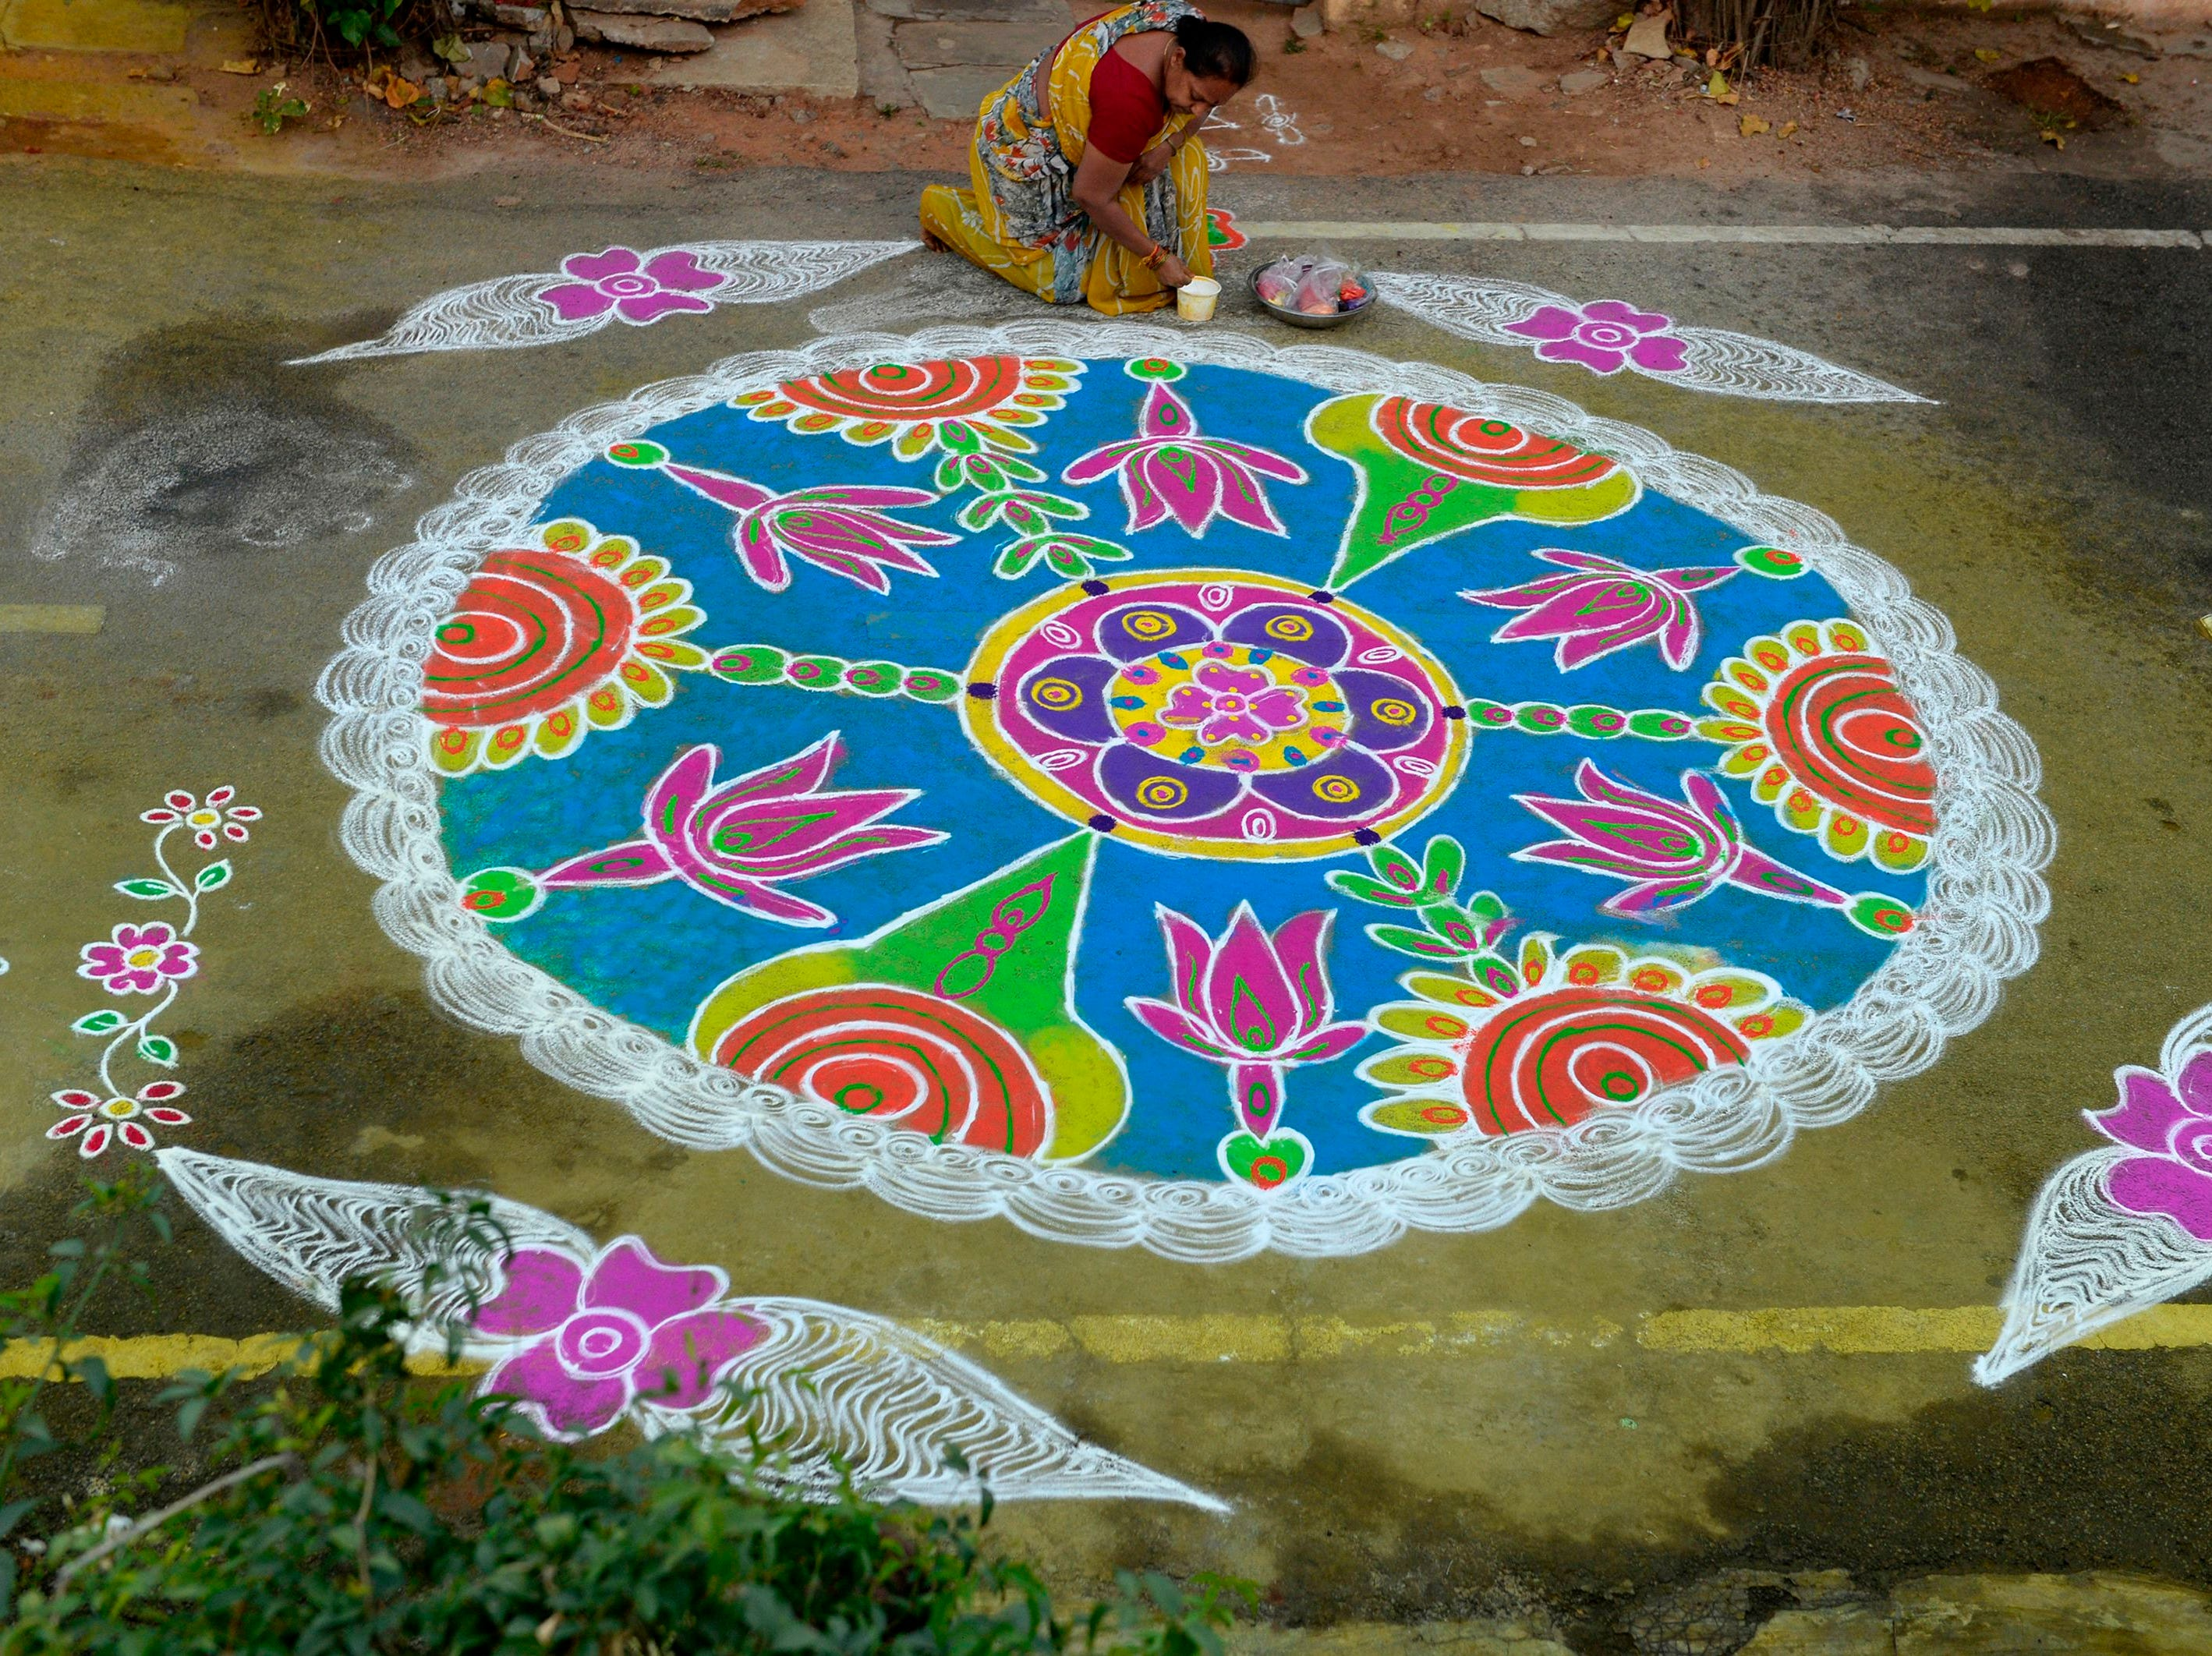 """A woman applies colored powder to a """"rangoli"""", a Hindu ritual design, to usher in the New Year in front of a home in Hyderabad on Jan. 1, 2019. Rangolis are drawn in front of homes early in the morning to welcome relatives and friends to mark the new year."""